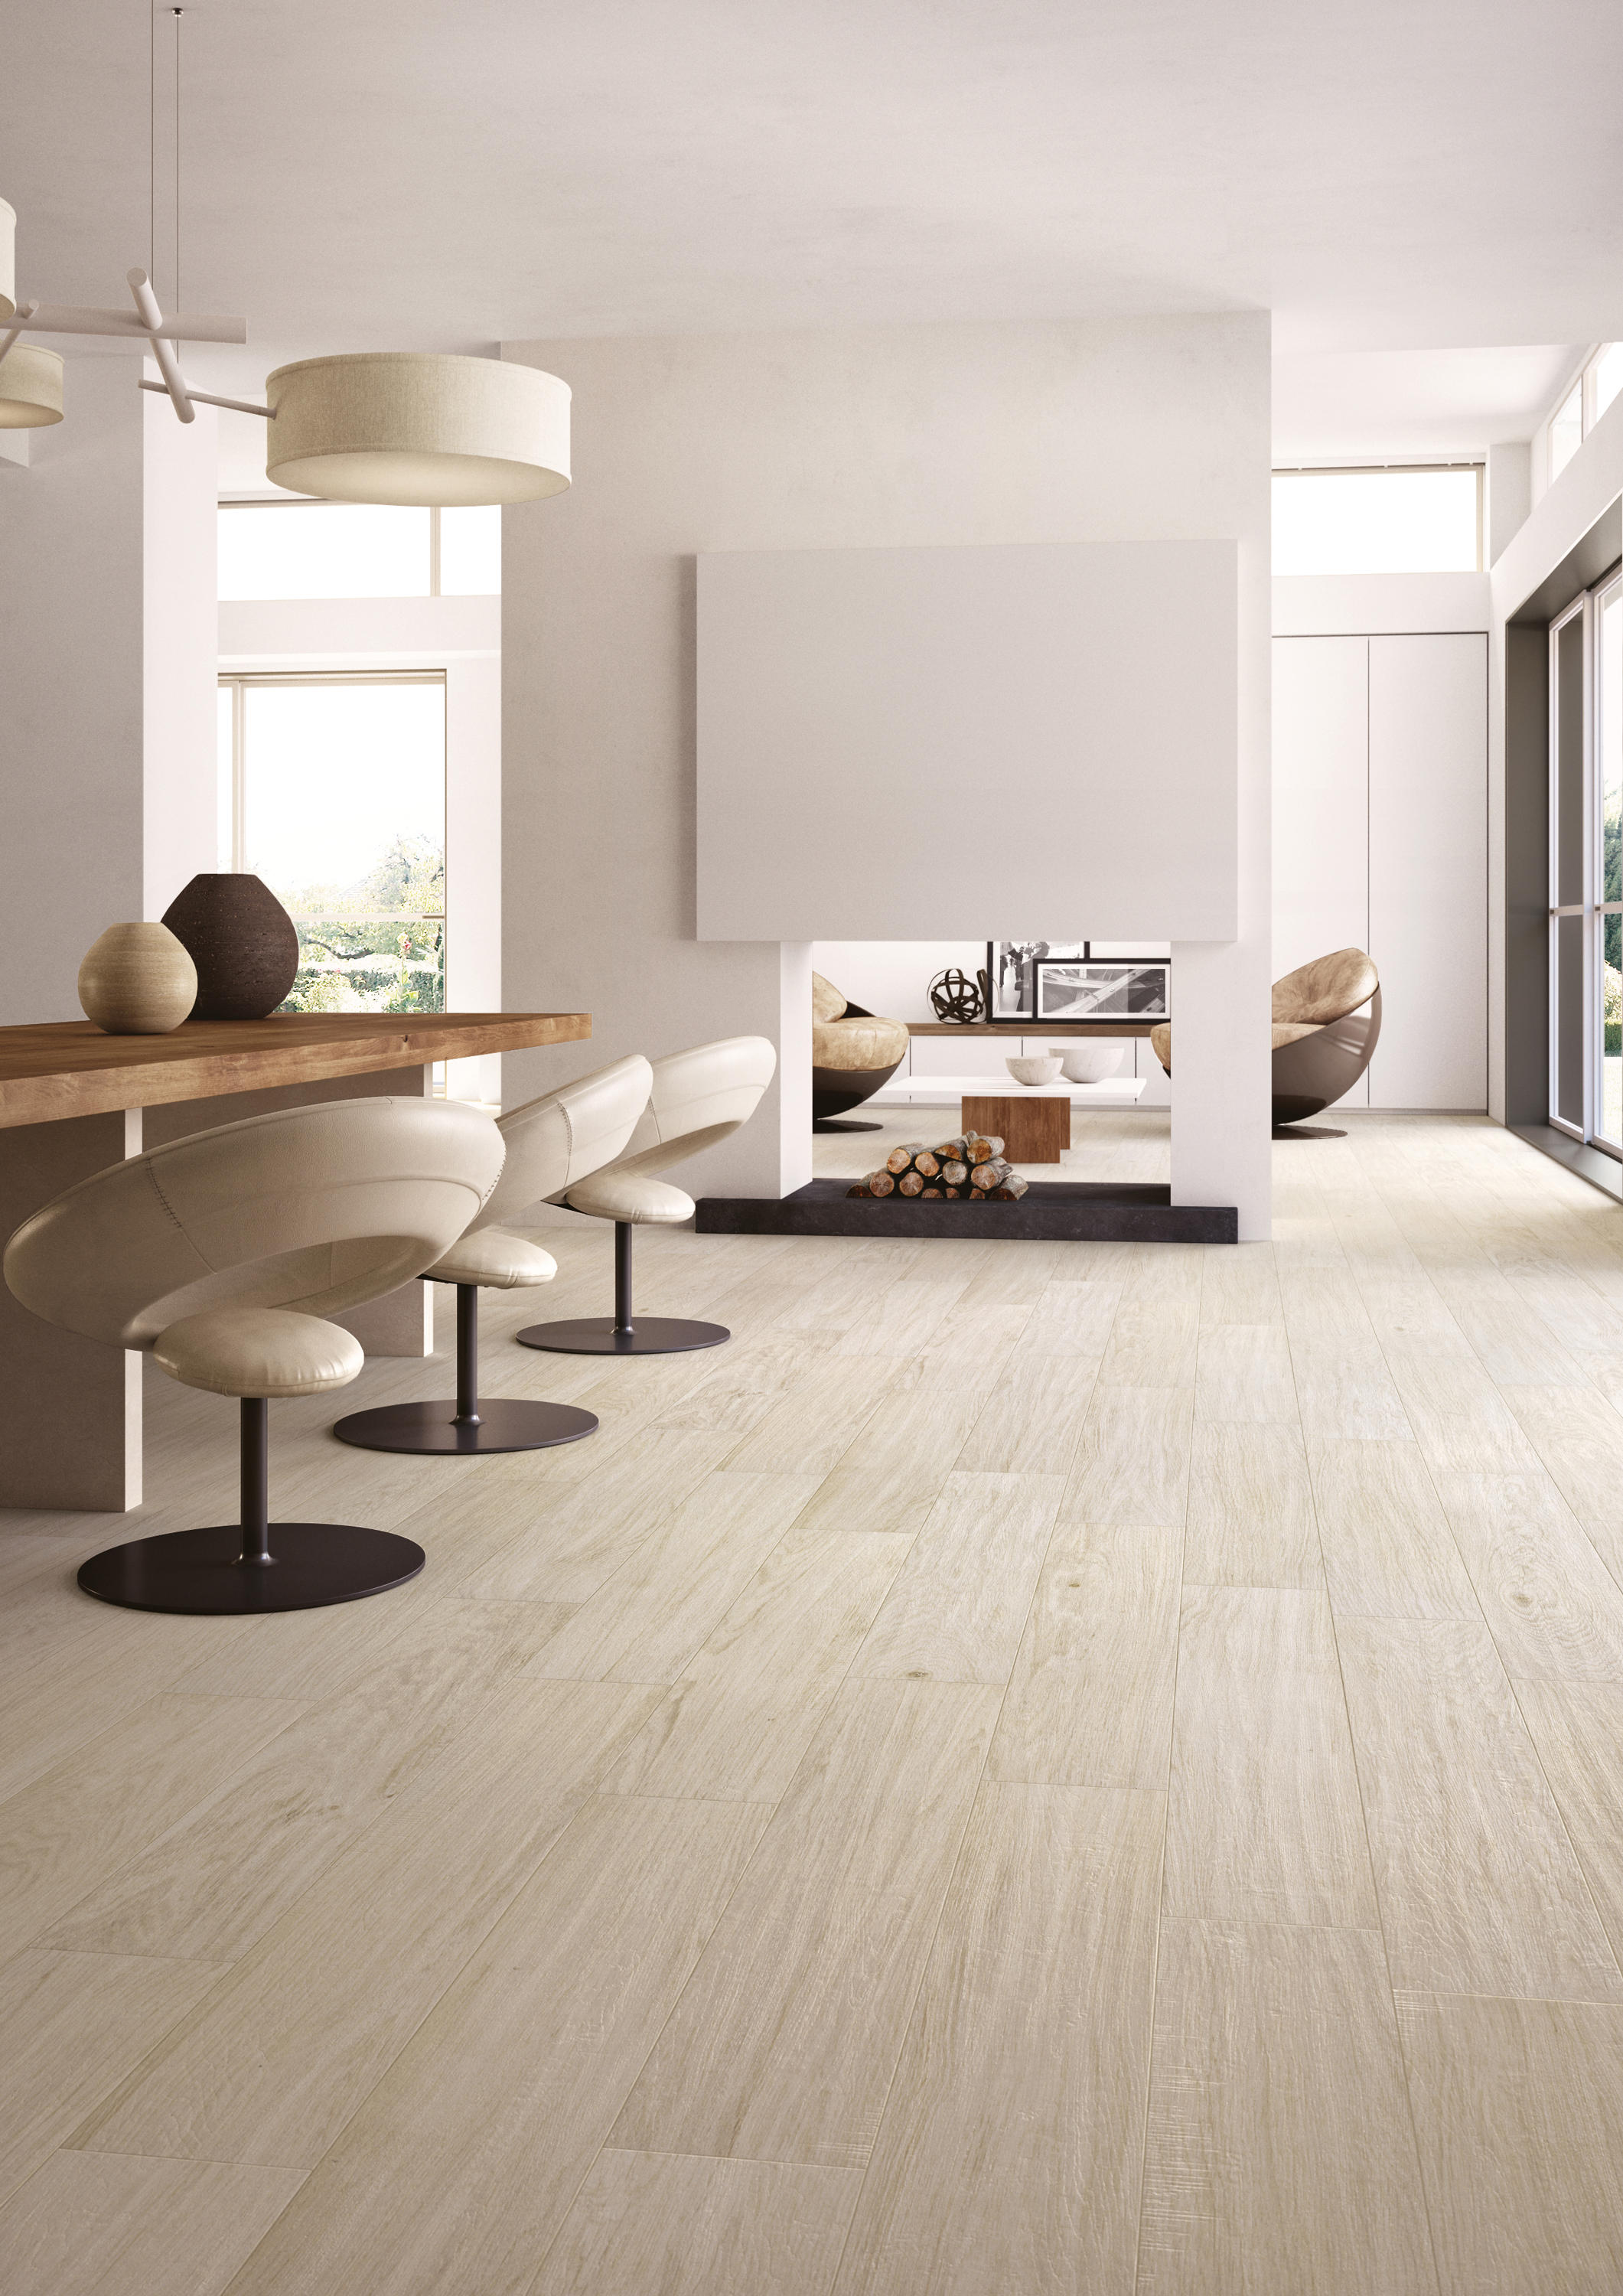 Silvis candeo floor tiles from cotto d 39 este architonic for Carrelage faux parquet